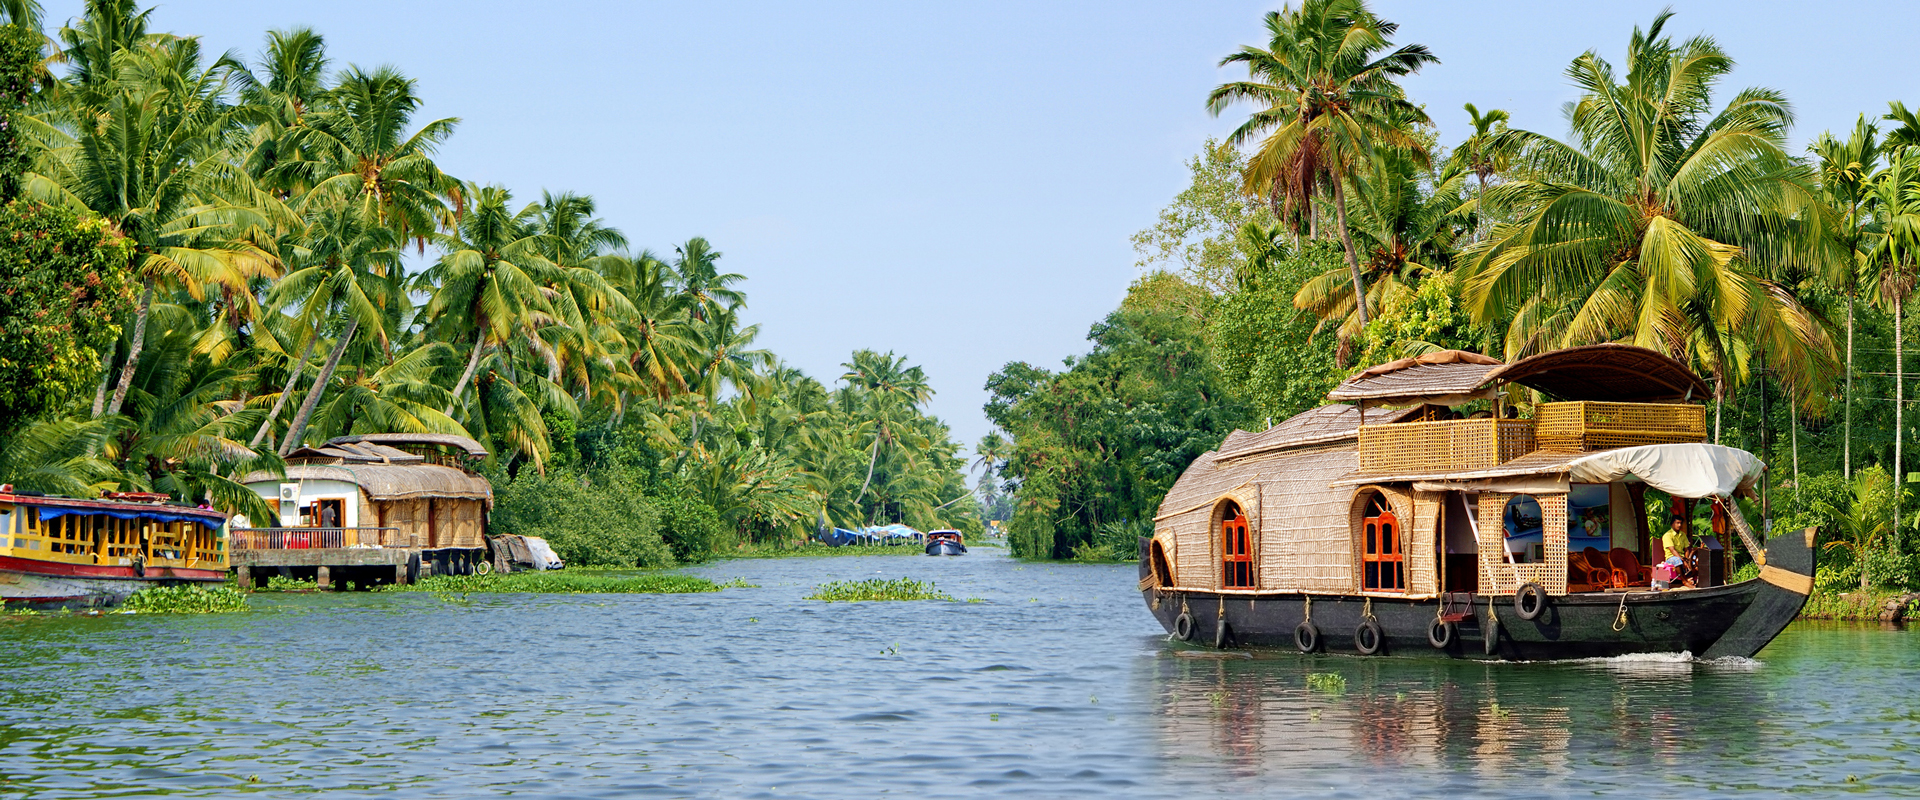 Inde | Backwaters